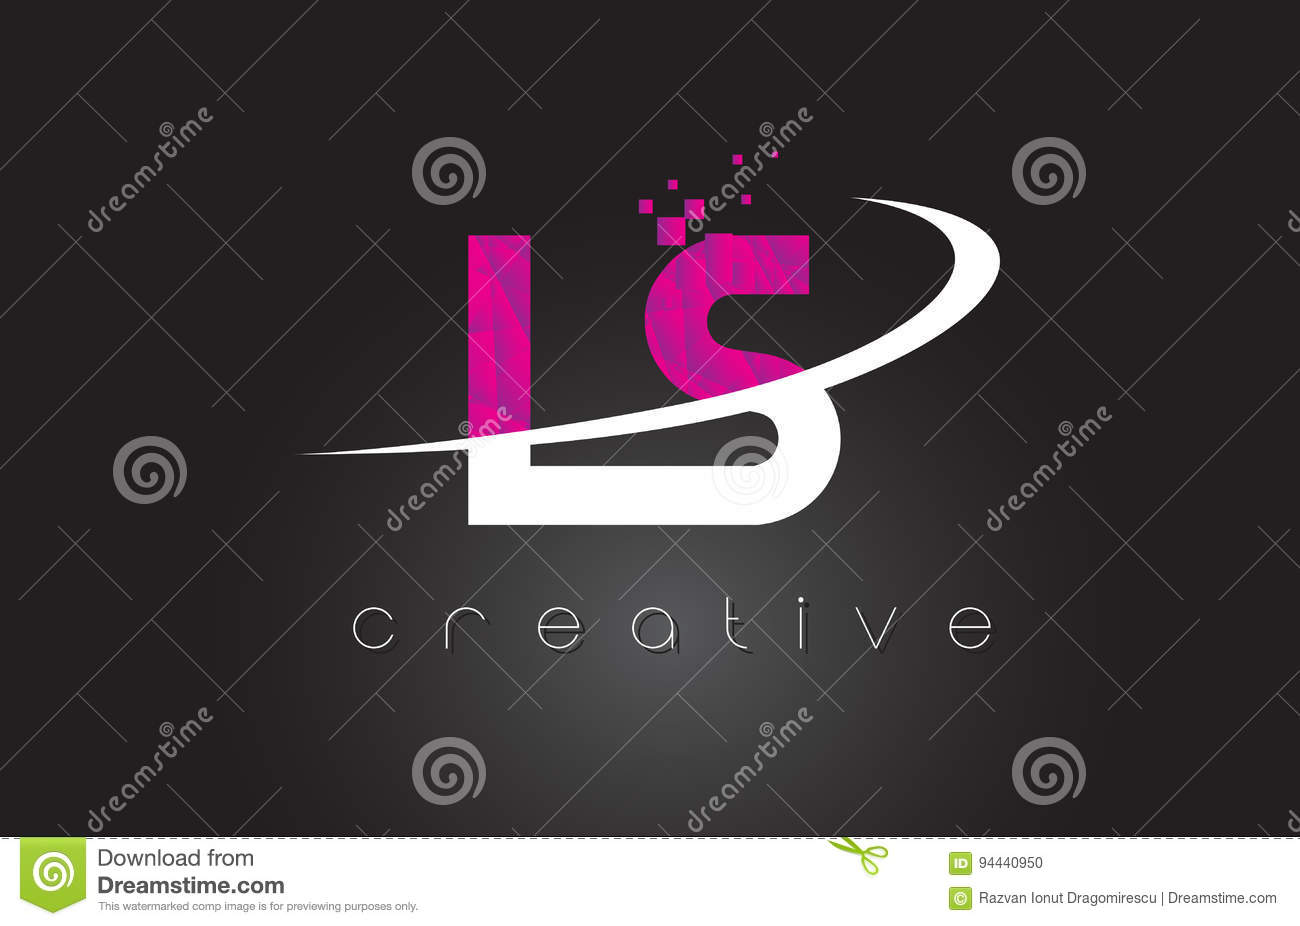 LS L S Creative Letters Design With White Pink Colors